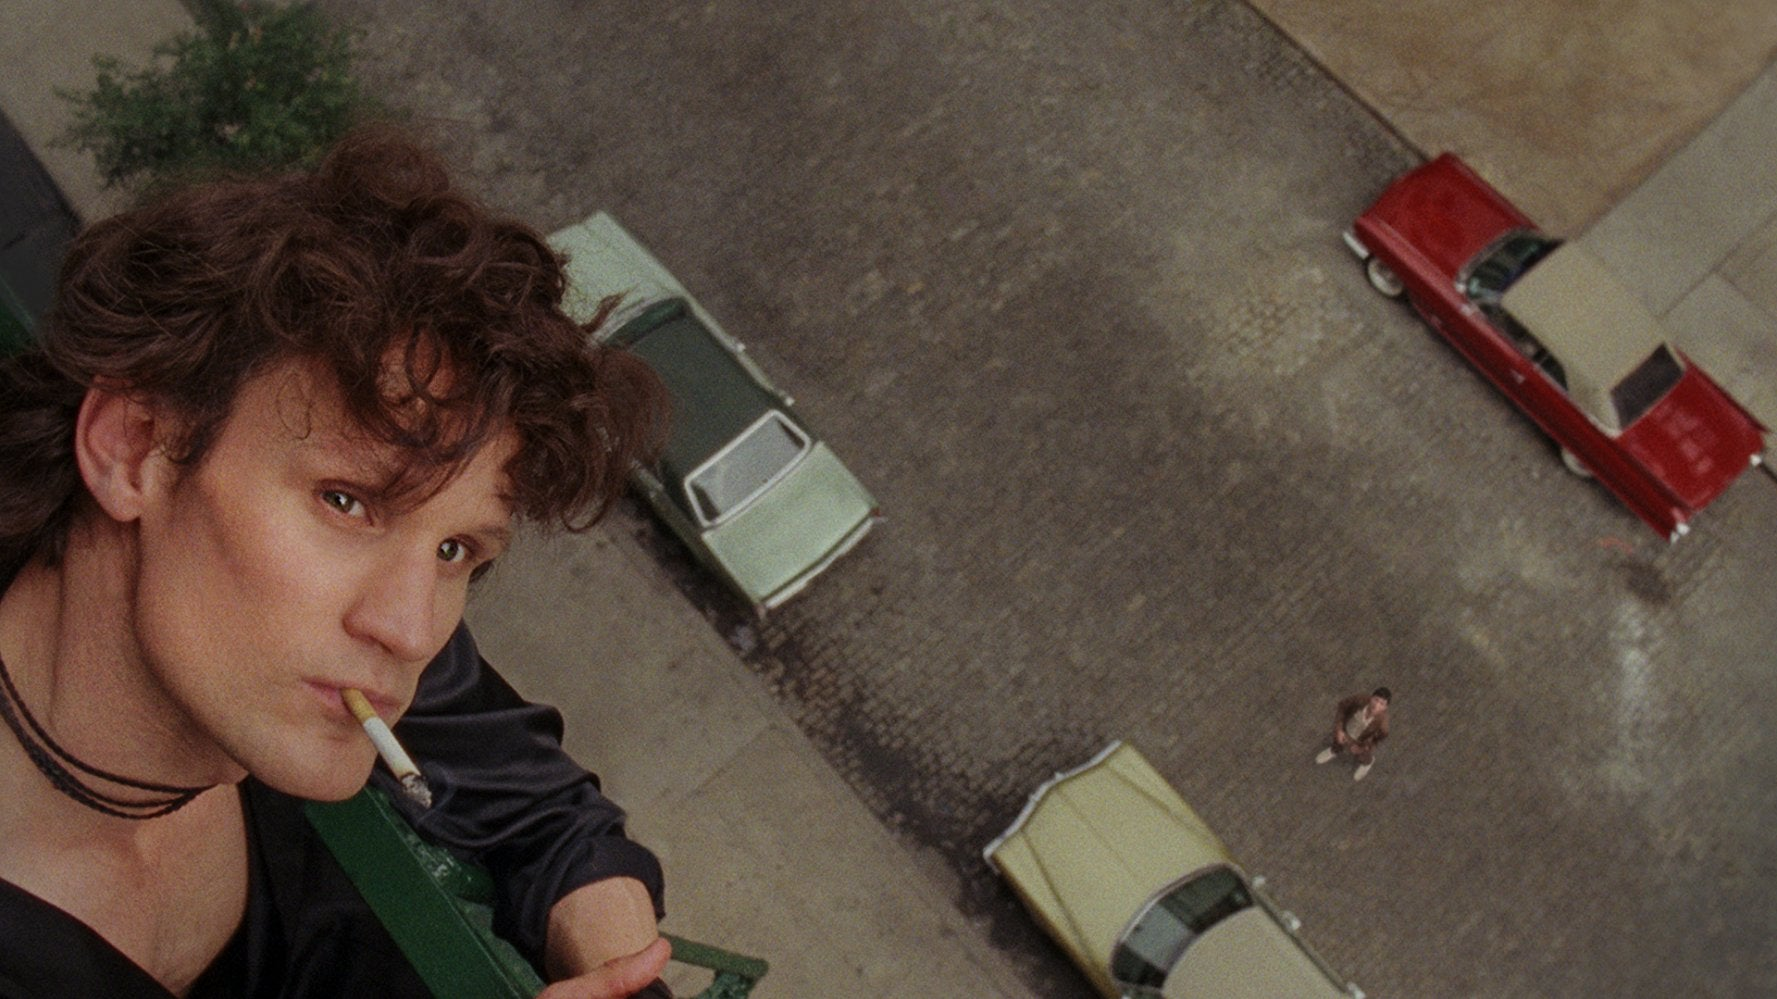 Matt Smith, a young man with curly brown hair and a square jaw, plays Robert Mapplethorpe in the biopic Mapplethorpe. He wears a black silk robe and smoke a cigarette on his fire escape, looking up. Cars move on the street below him.